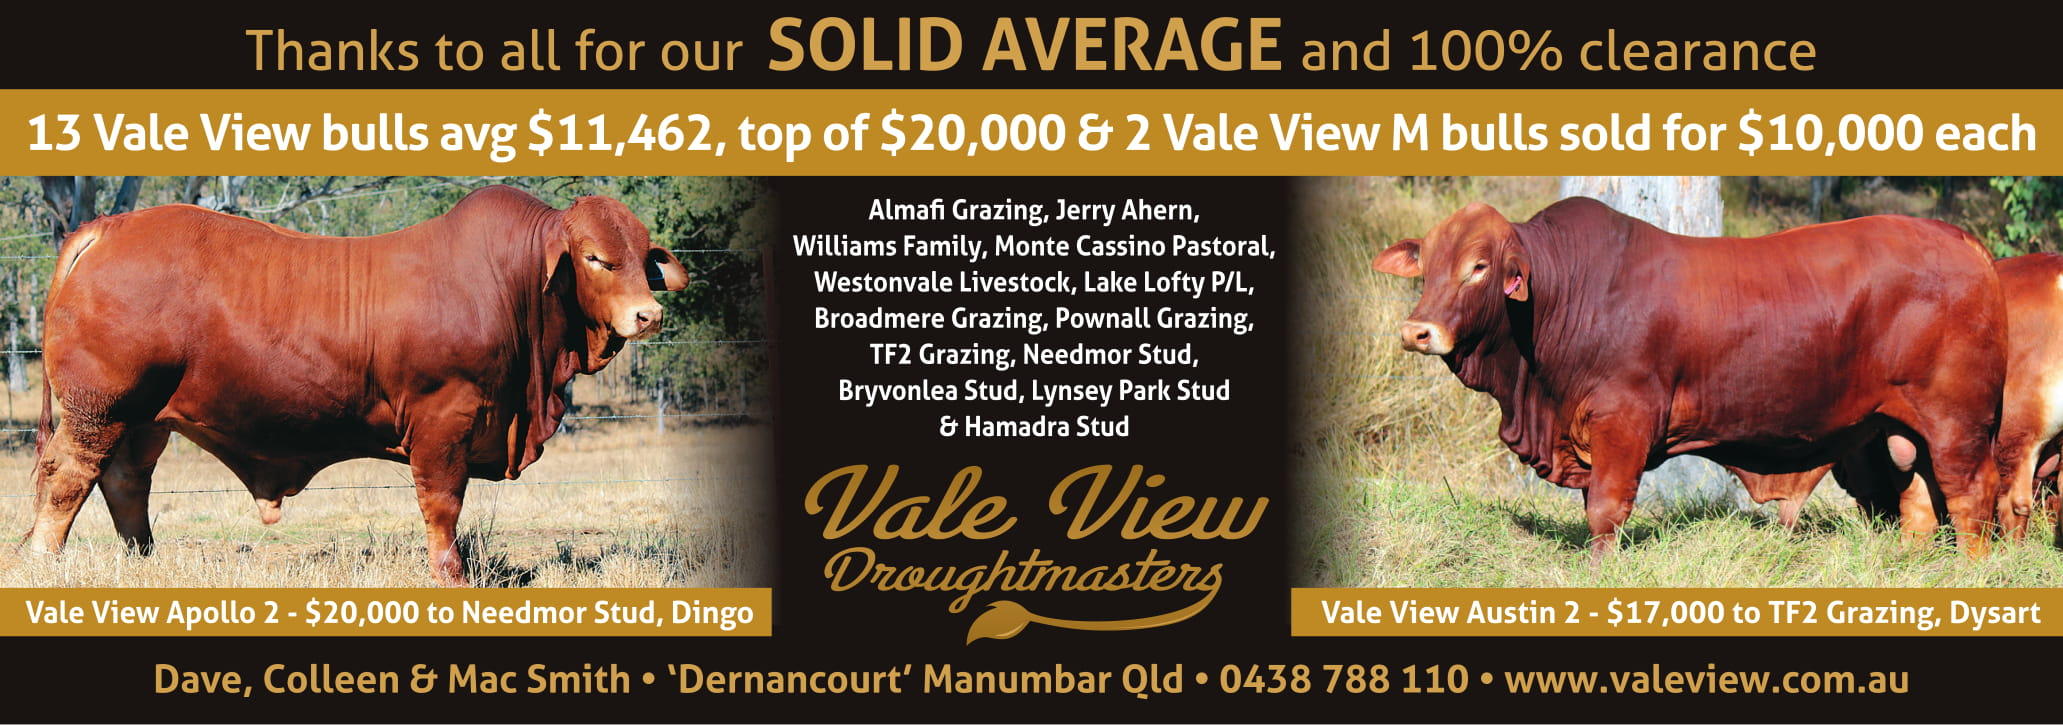 2018 DN Sale QCL thank you ad